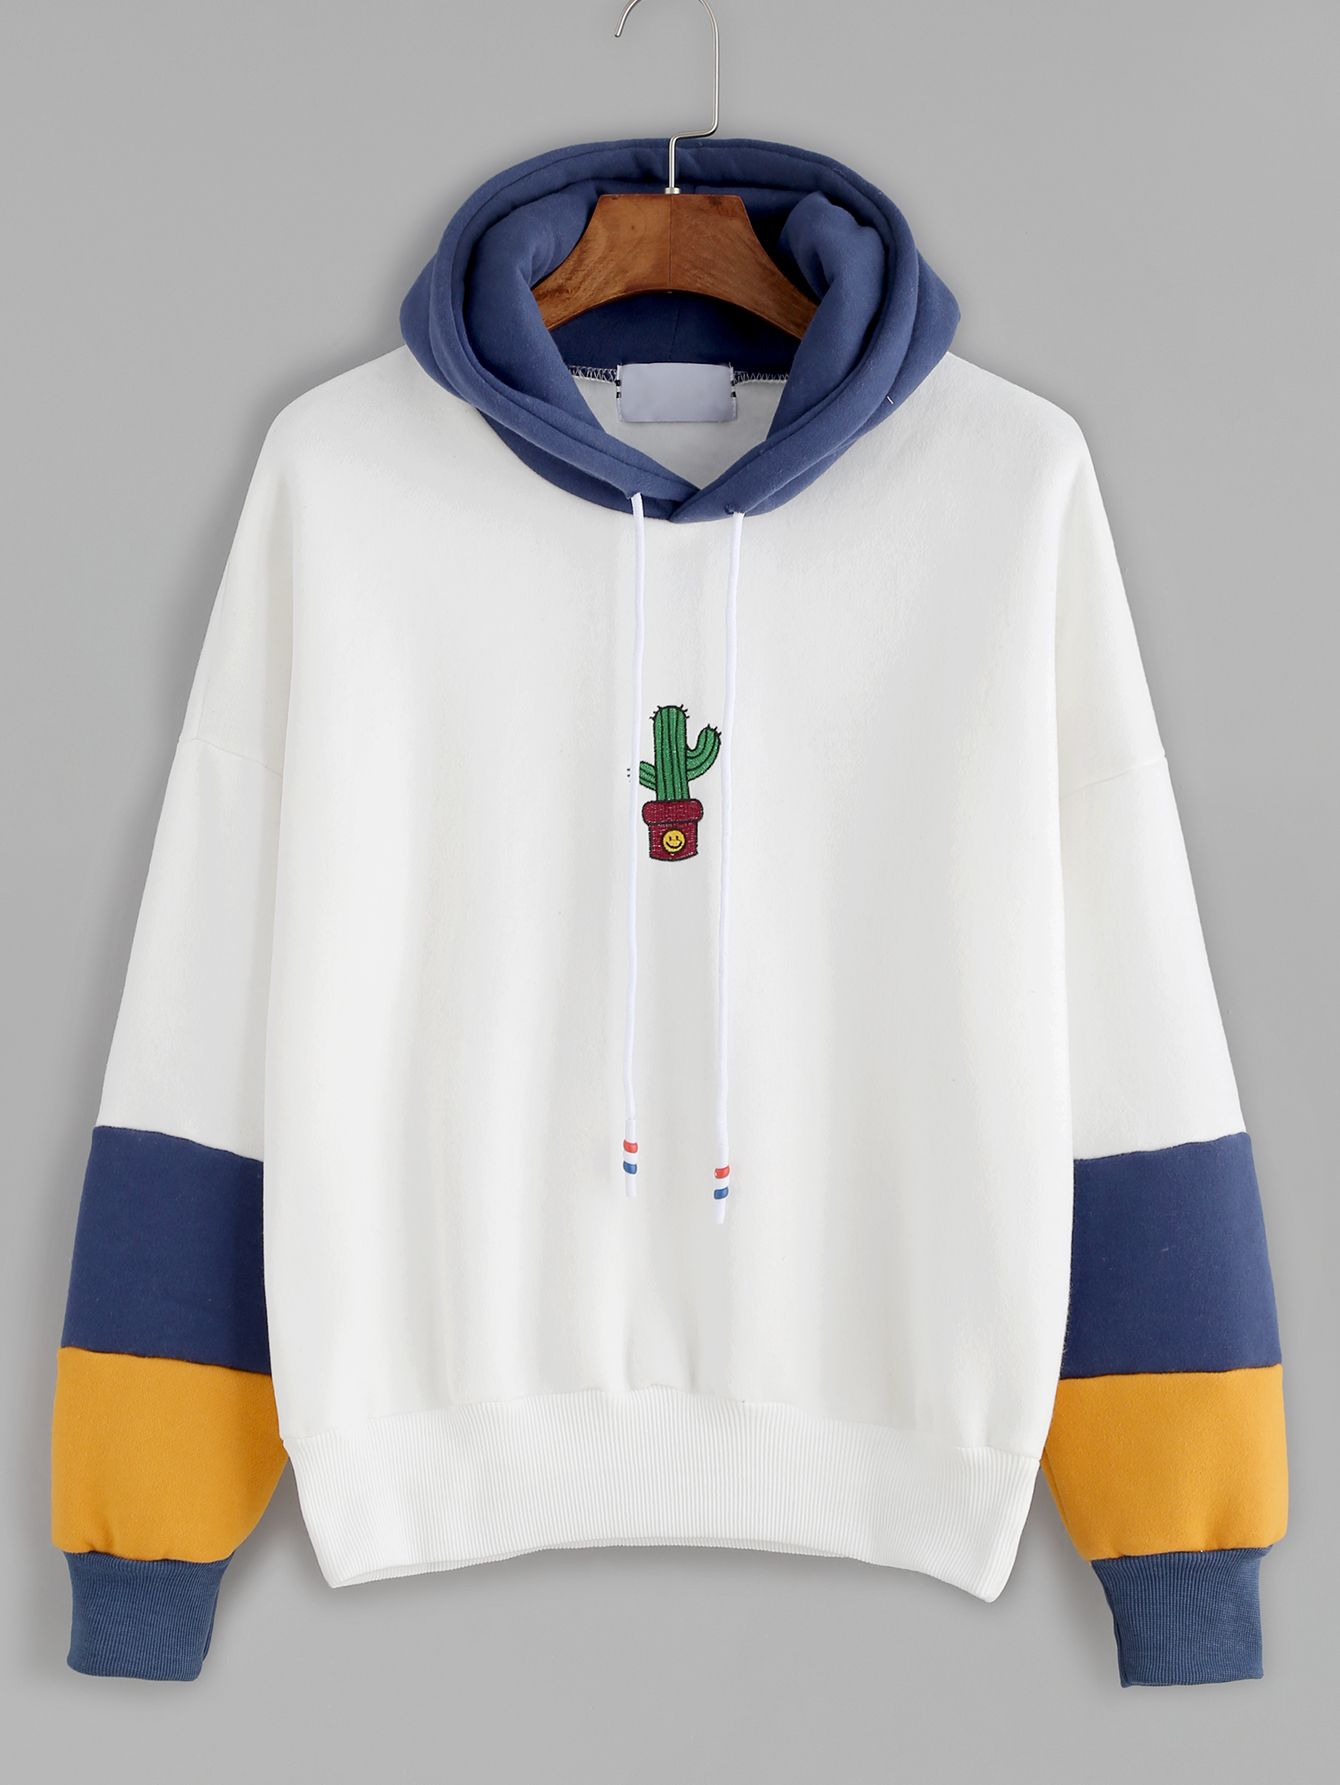 Hooded Drawstring Cactus Embroidery Sweatshirt | Cactus embroidery ...